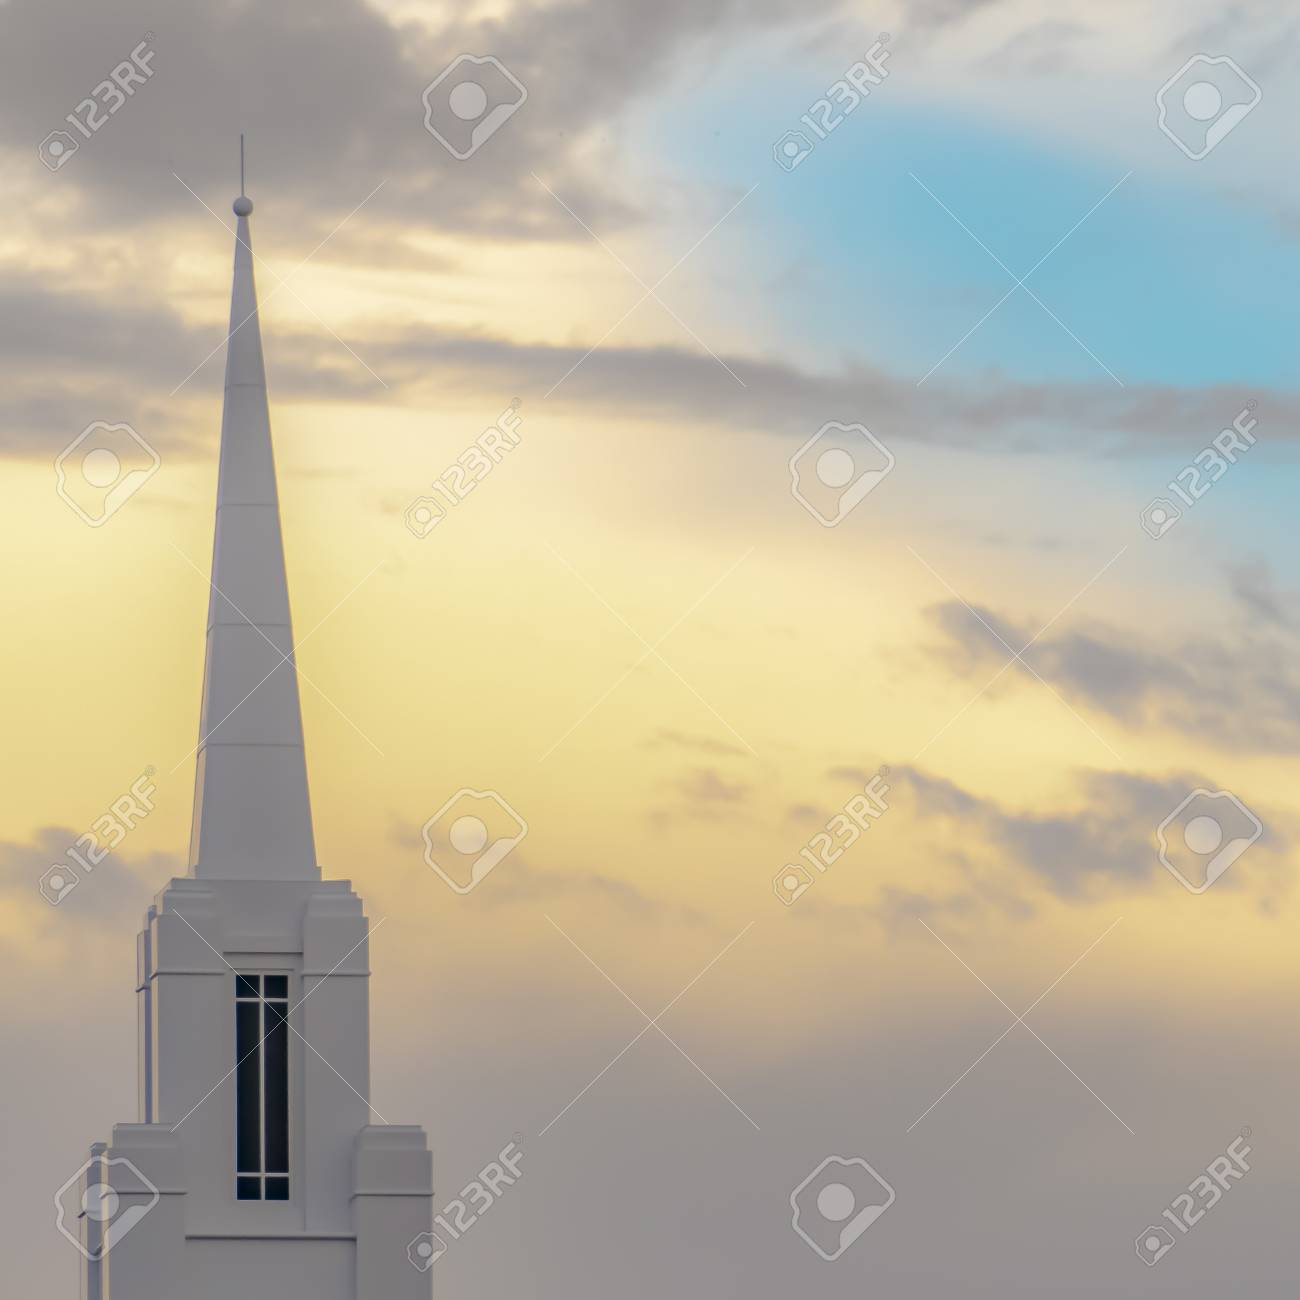 115094652-church-steeple-with-copy-space-behind-in-the-sky-the-sky-shows-pinks-purples-blues-and-golden-light-.jpg